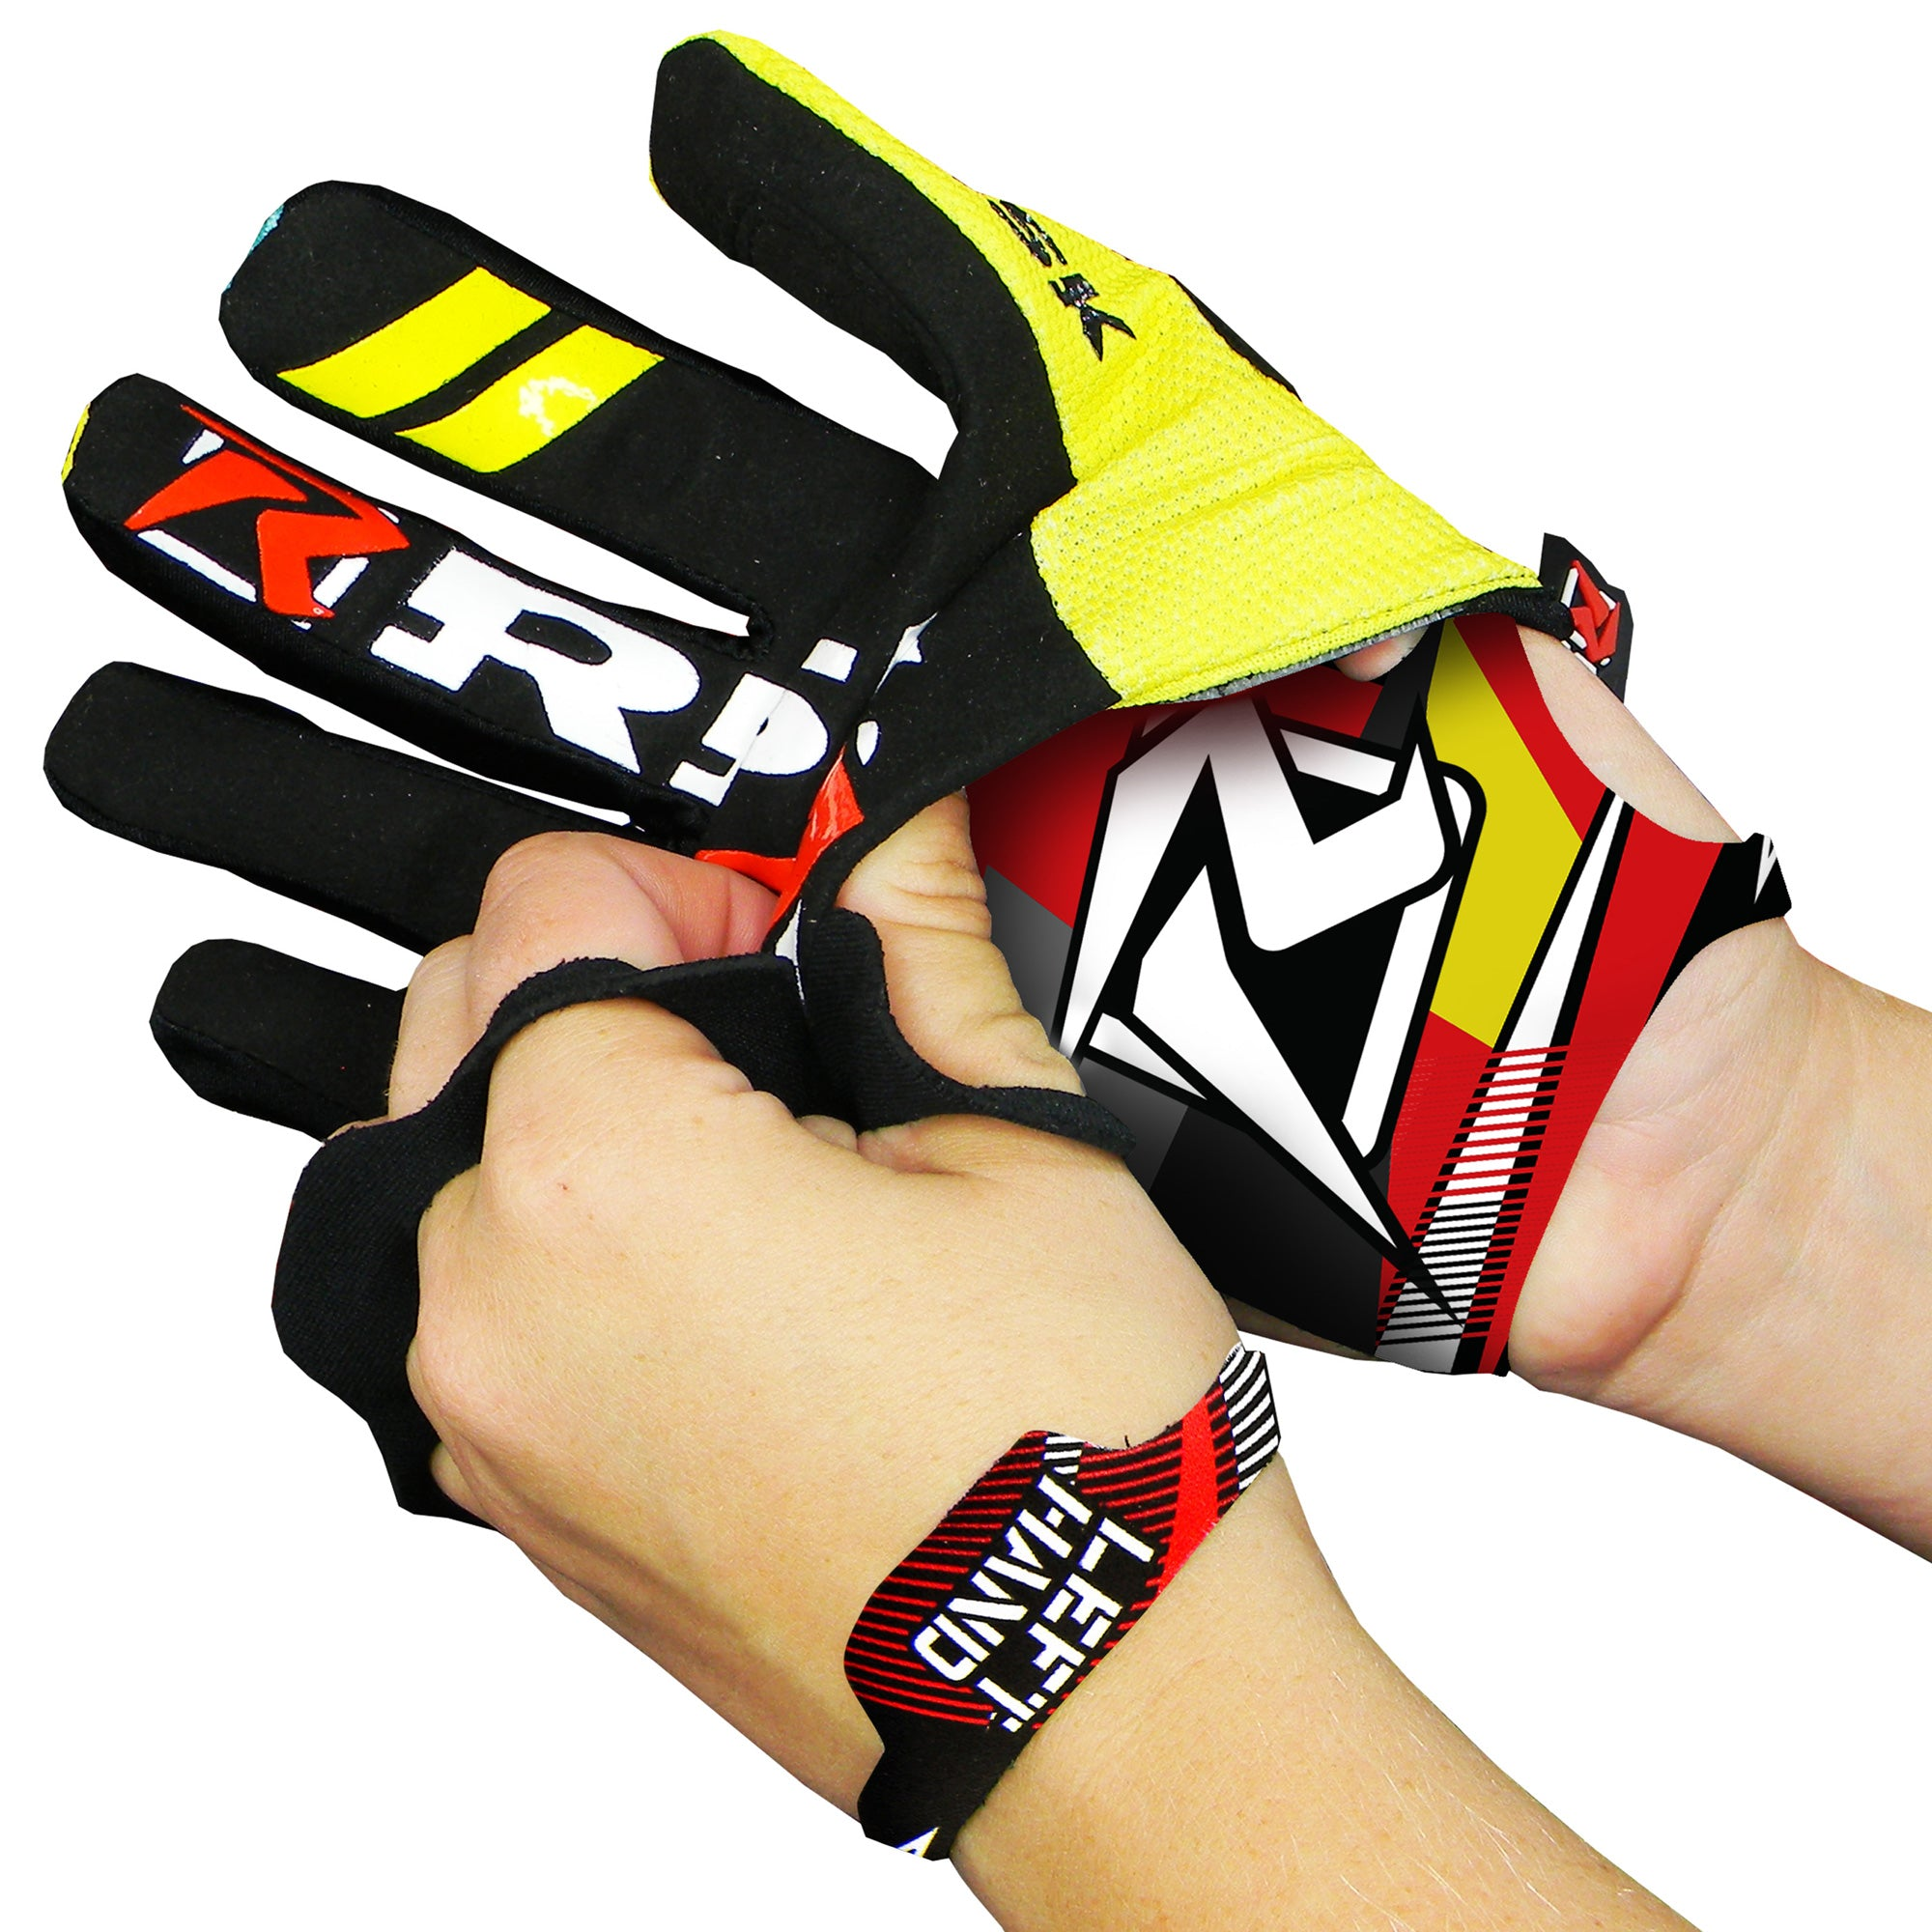 LARGE RISK RACING 00111 RISK RACING PALM PROTECTOR SOLD IN PAIRS